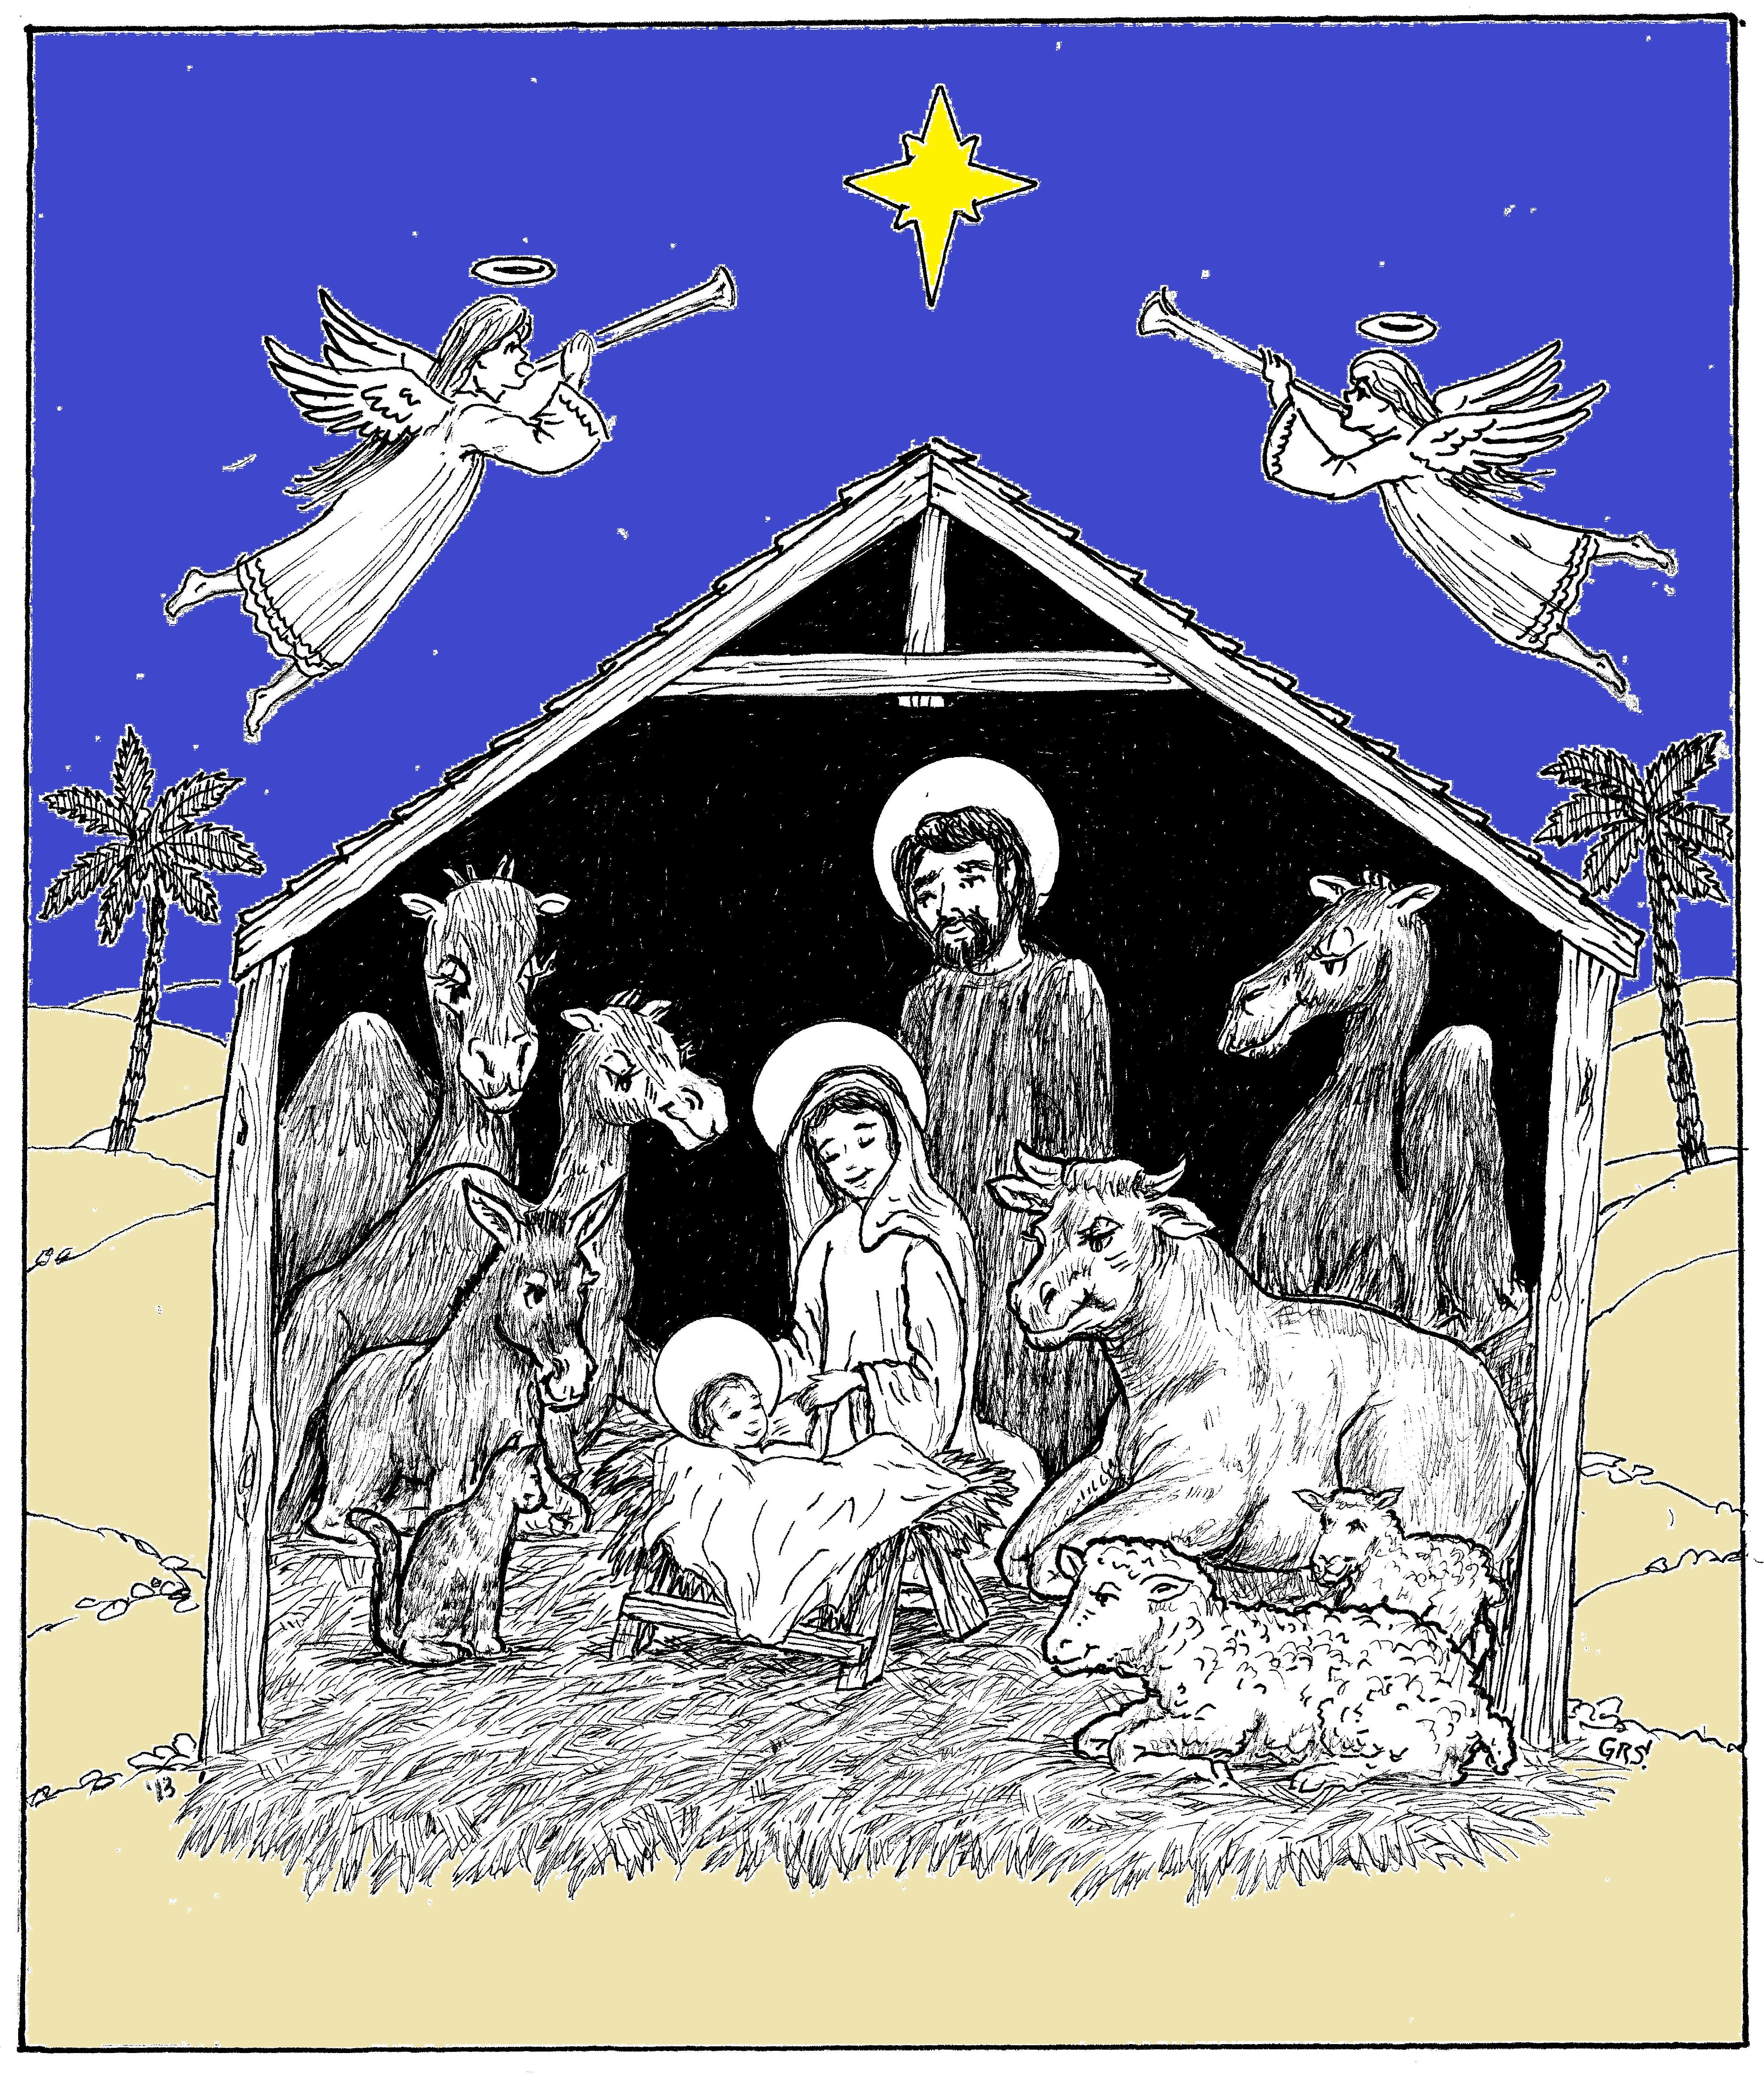 Welcome, Baby Jesus....a heartwarming telling of the night baby Jesus arrived, as told by the animals in the stable.